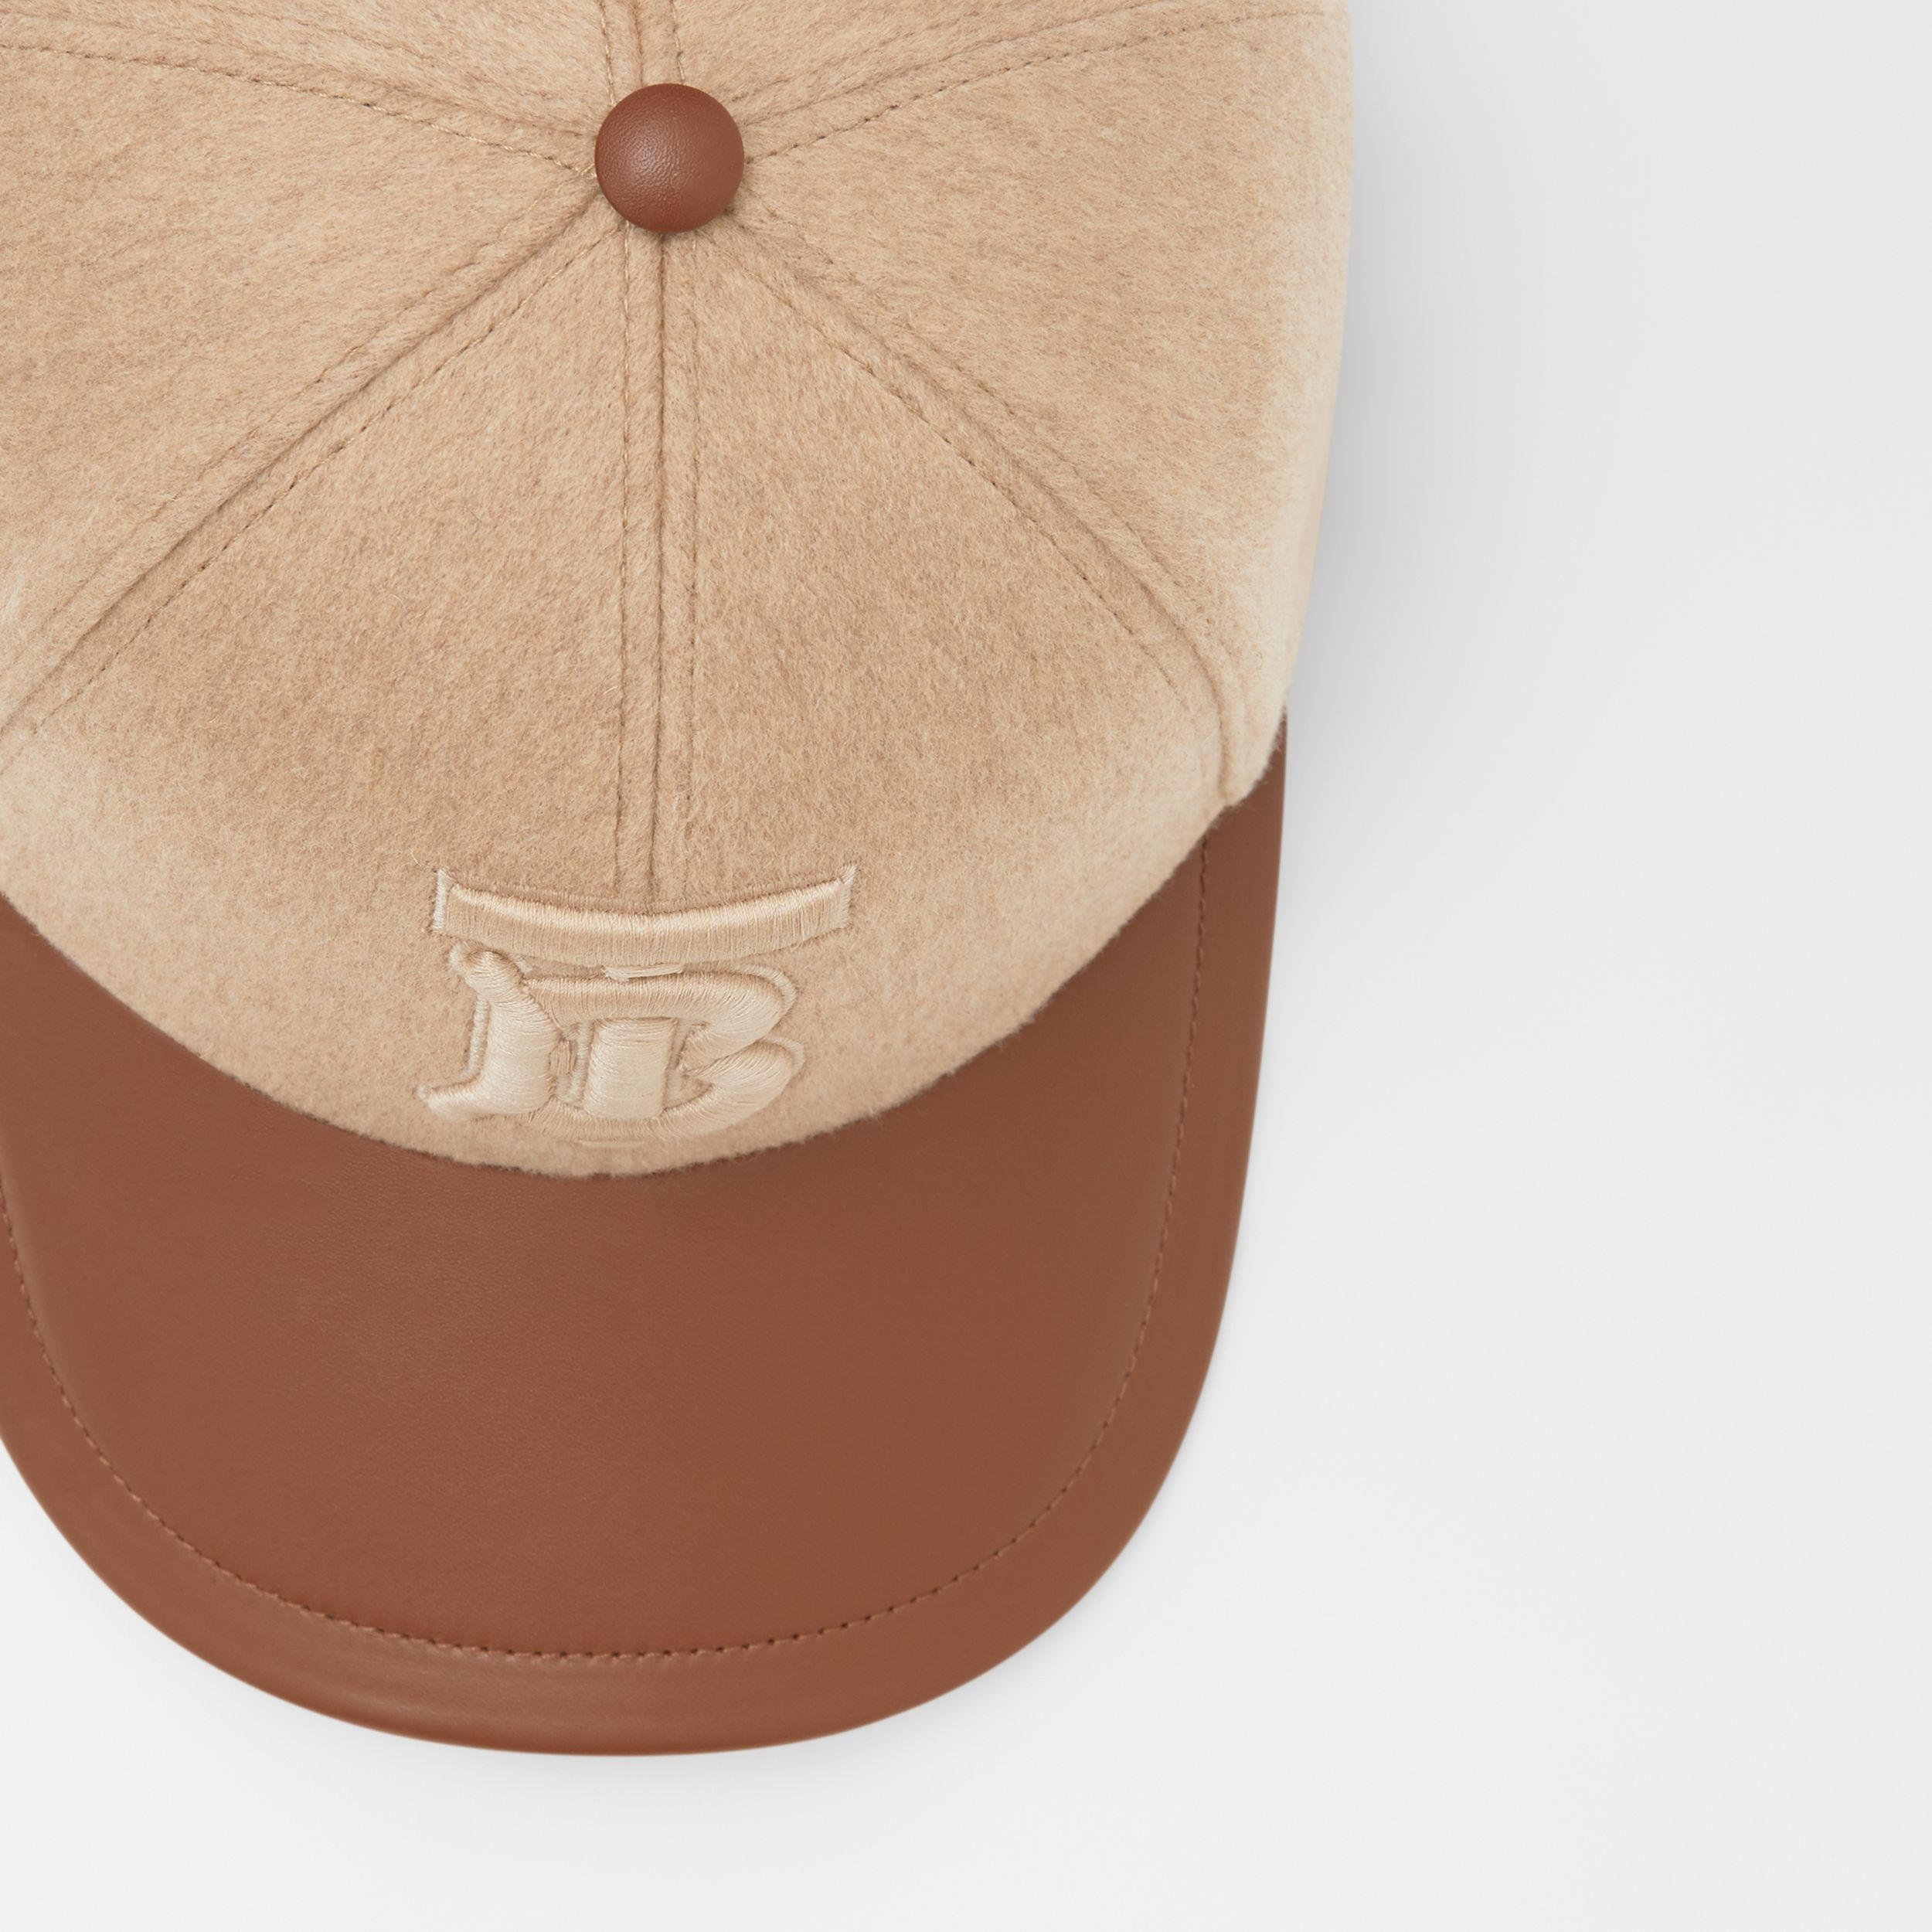 Monogram Motif Cashmere and Leather Baseball Cap in Camel | Burberry - 2